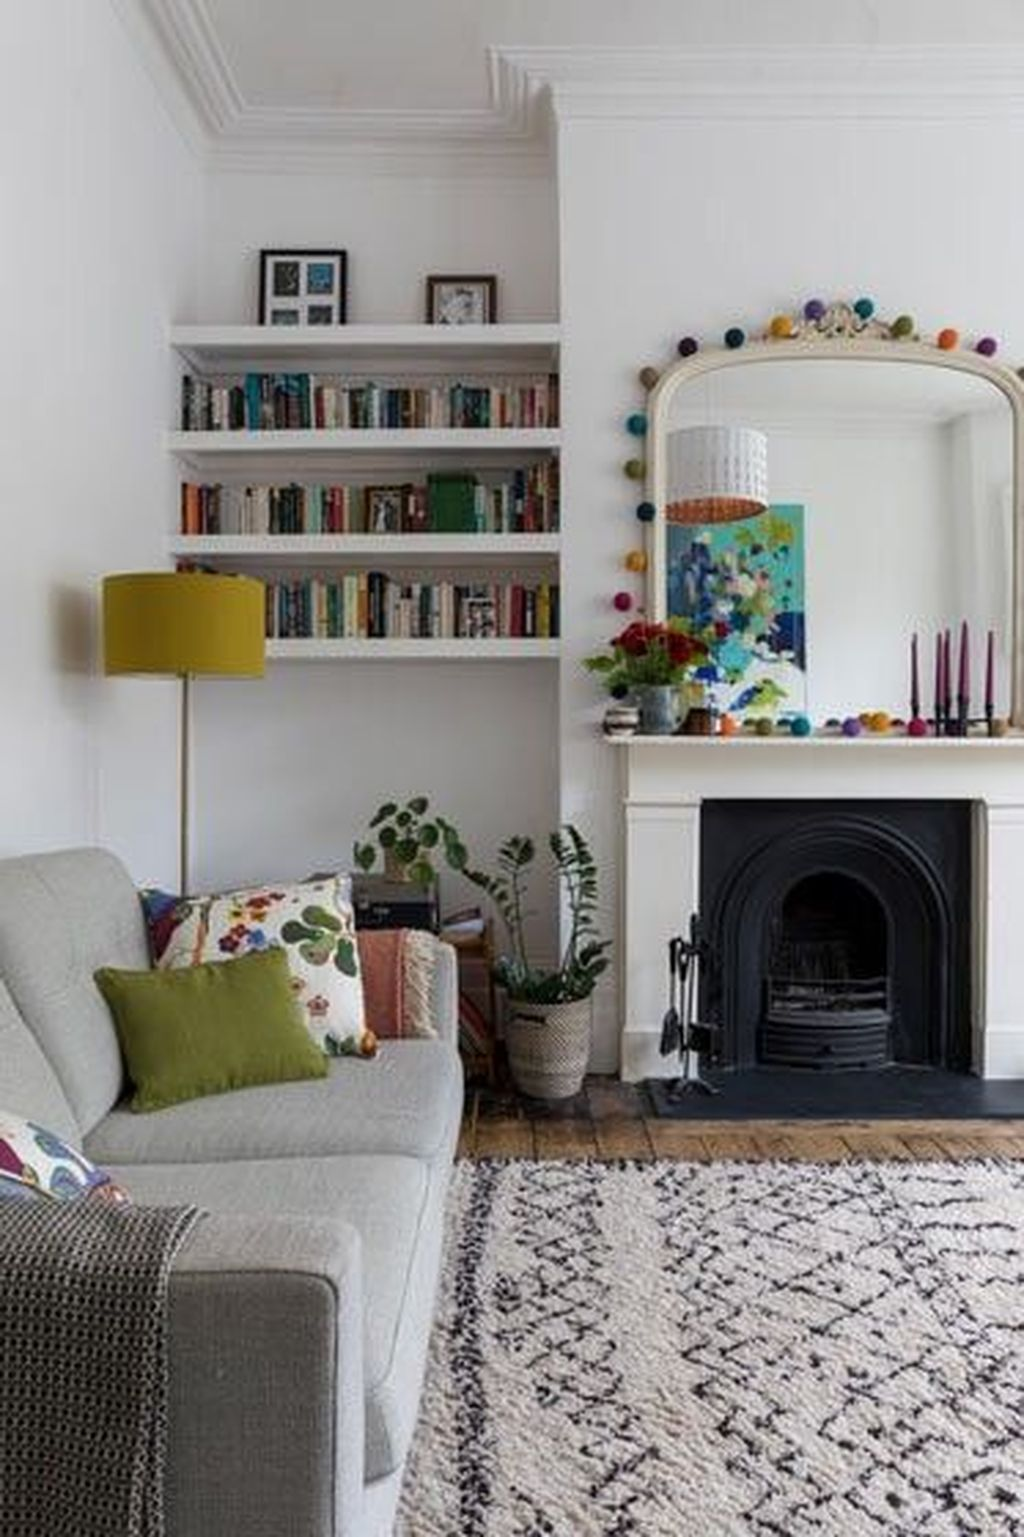 20 Cute And Chic Living Room Design For Your Home Trenduhome Victorian Living Room Home Living Room Living Room Shelves